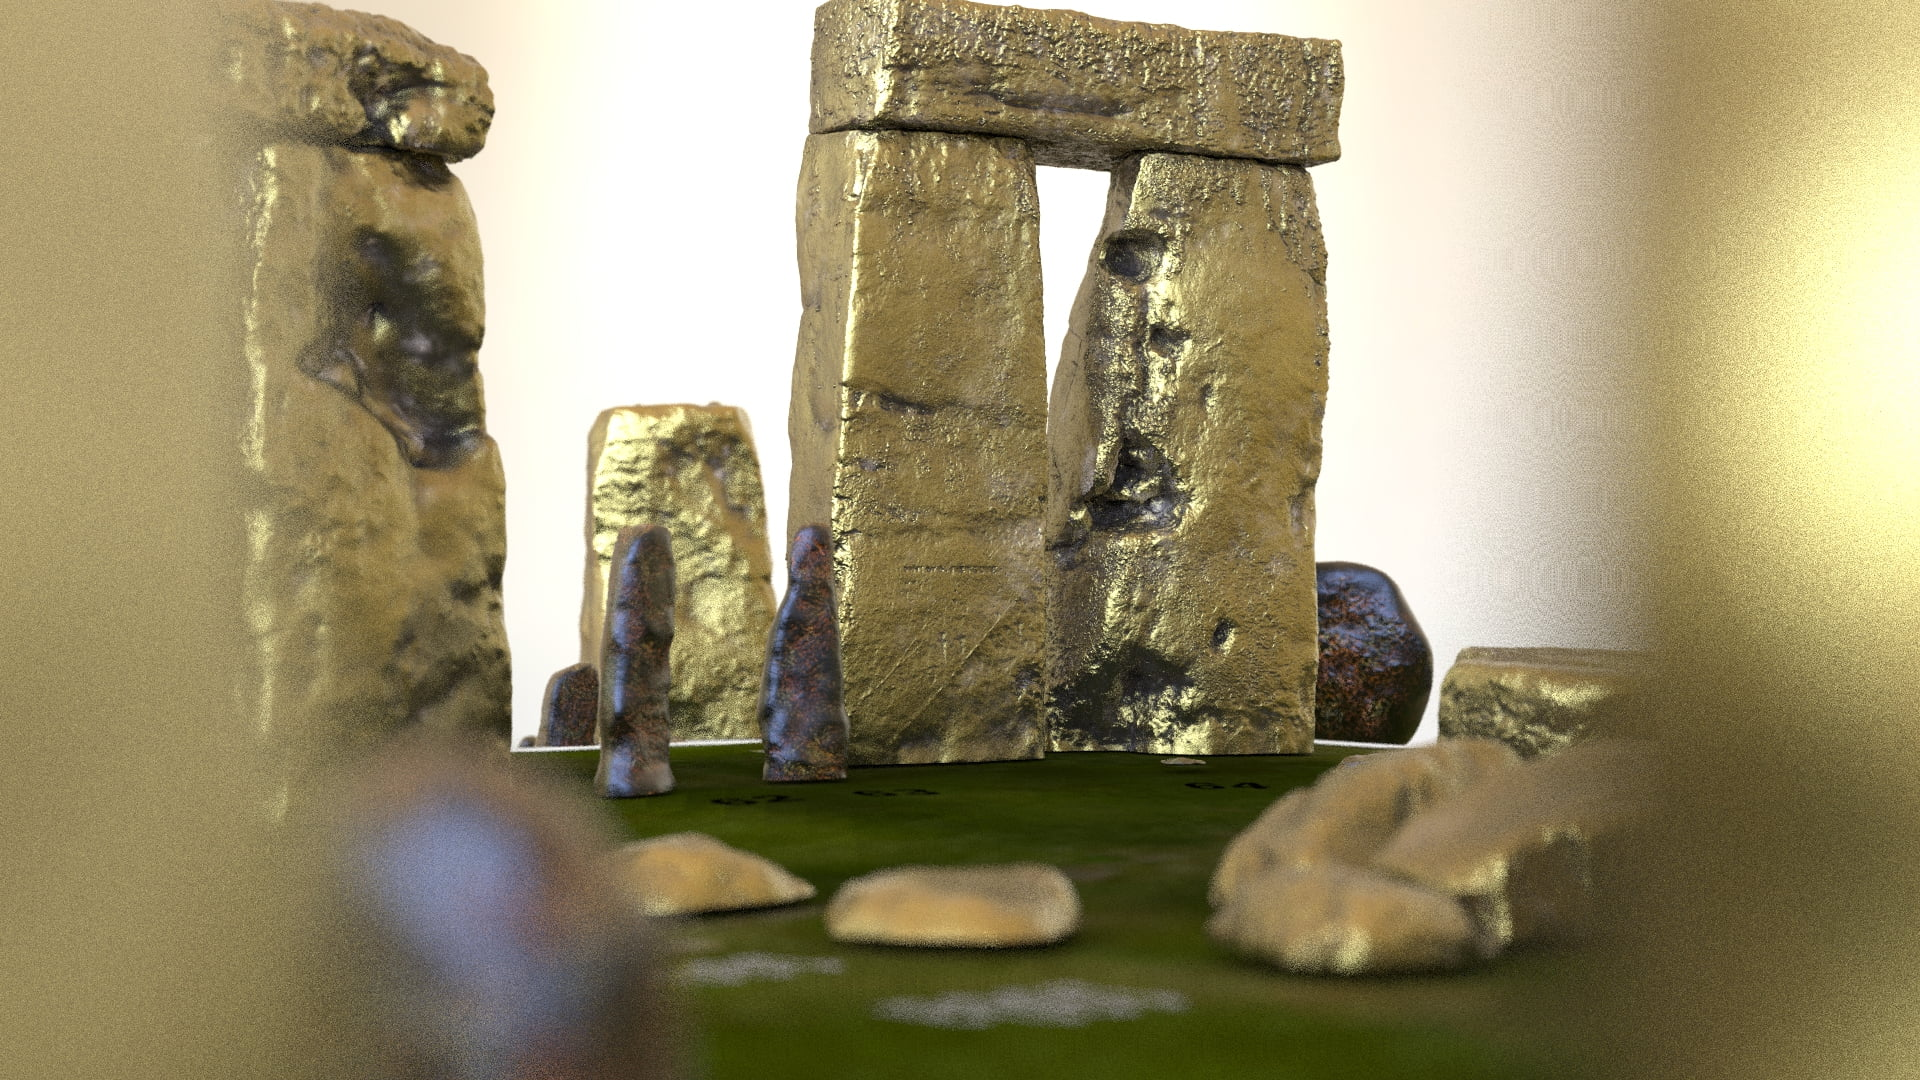 Buy Stonehenge Models: Aged brass Stonehenge replica models at 200th scale 195 x 195 mm or 7.7 x 7.7 square on parch marked grass map with numbered stones accurate and highly detailed.58  - 200th scale pick n mix -